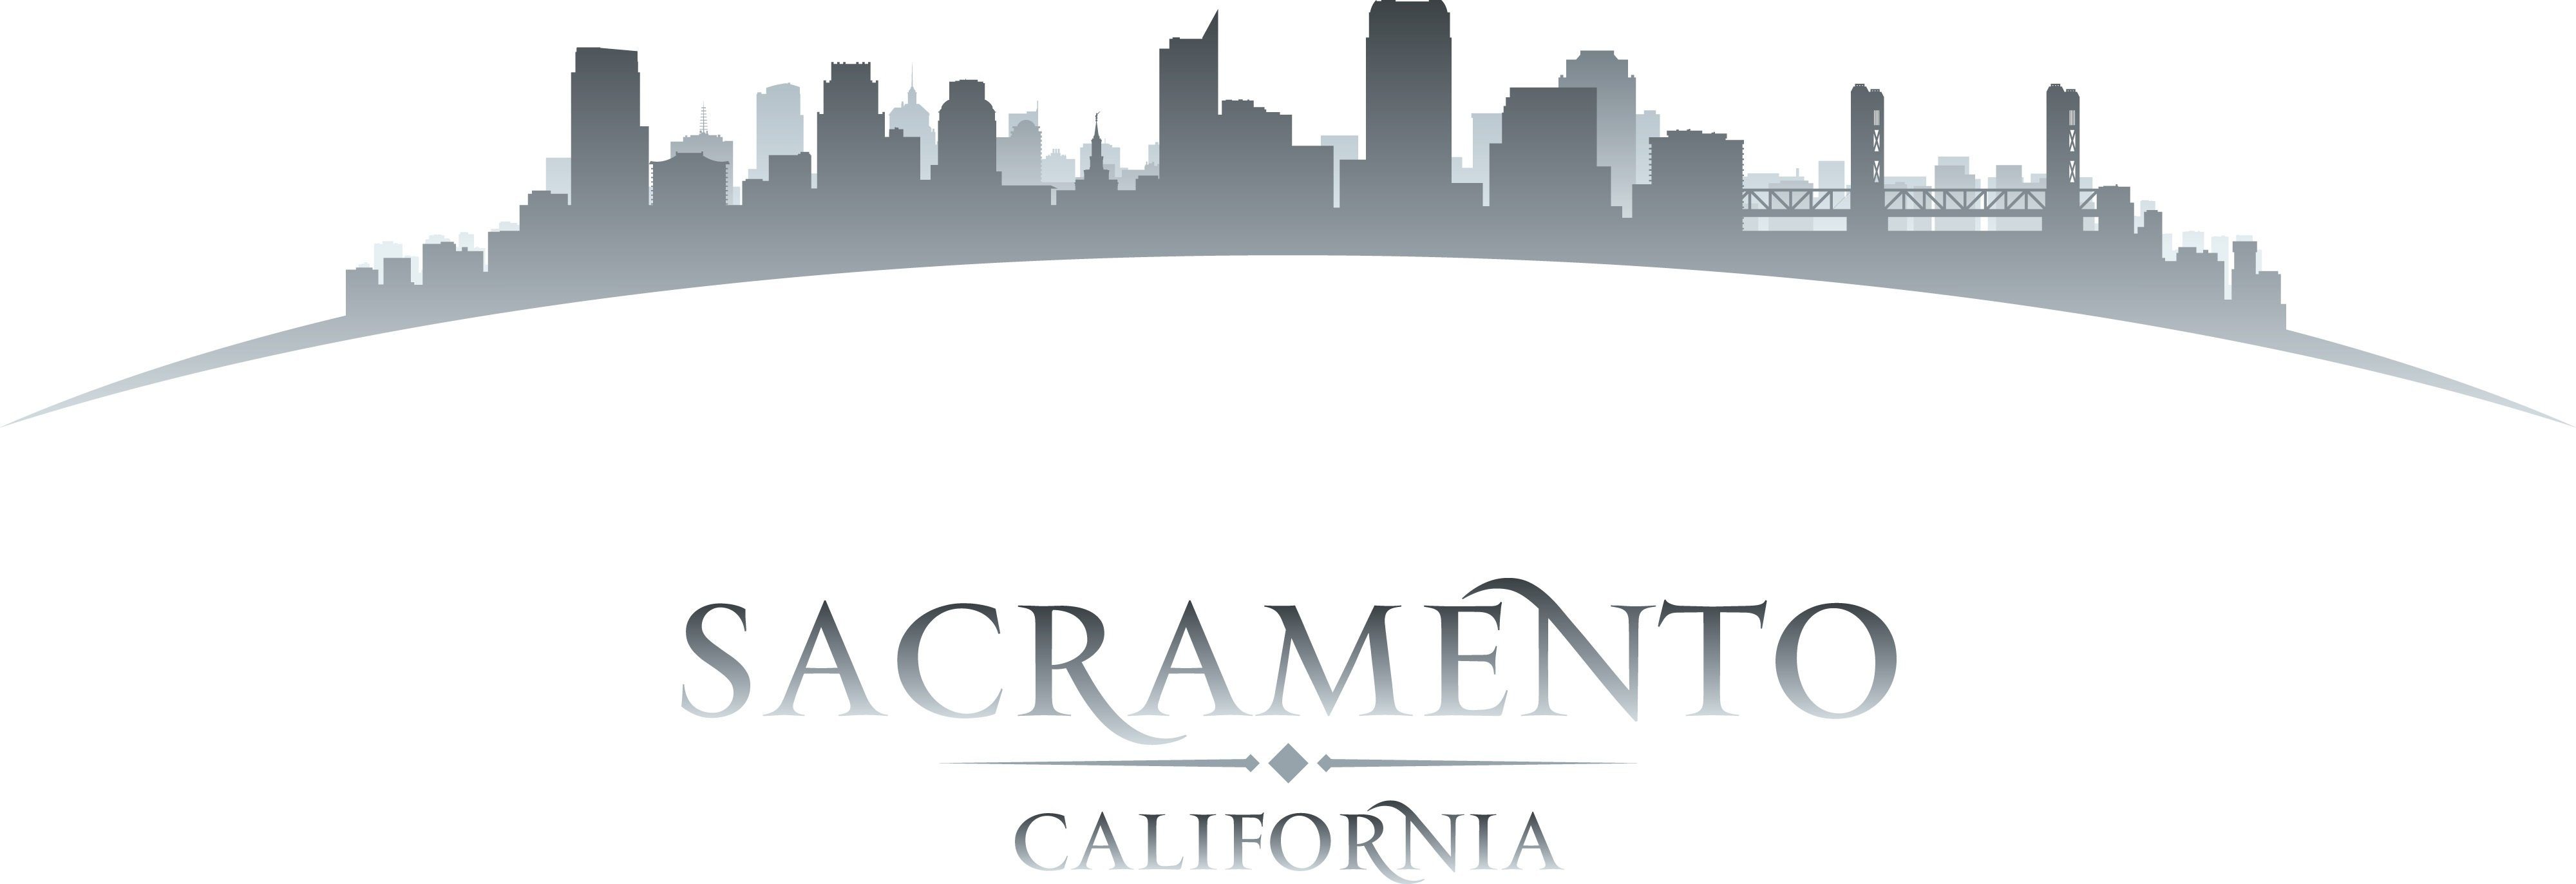 Marijuana dispensaries Sacramento